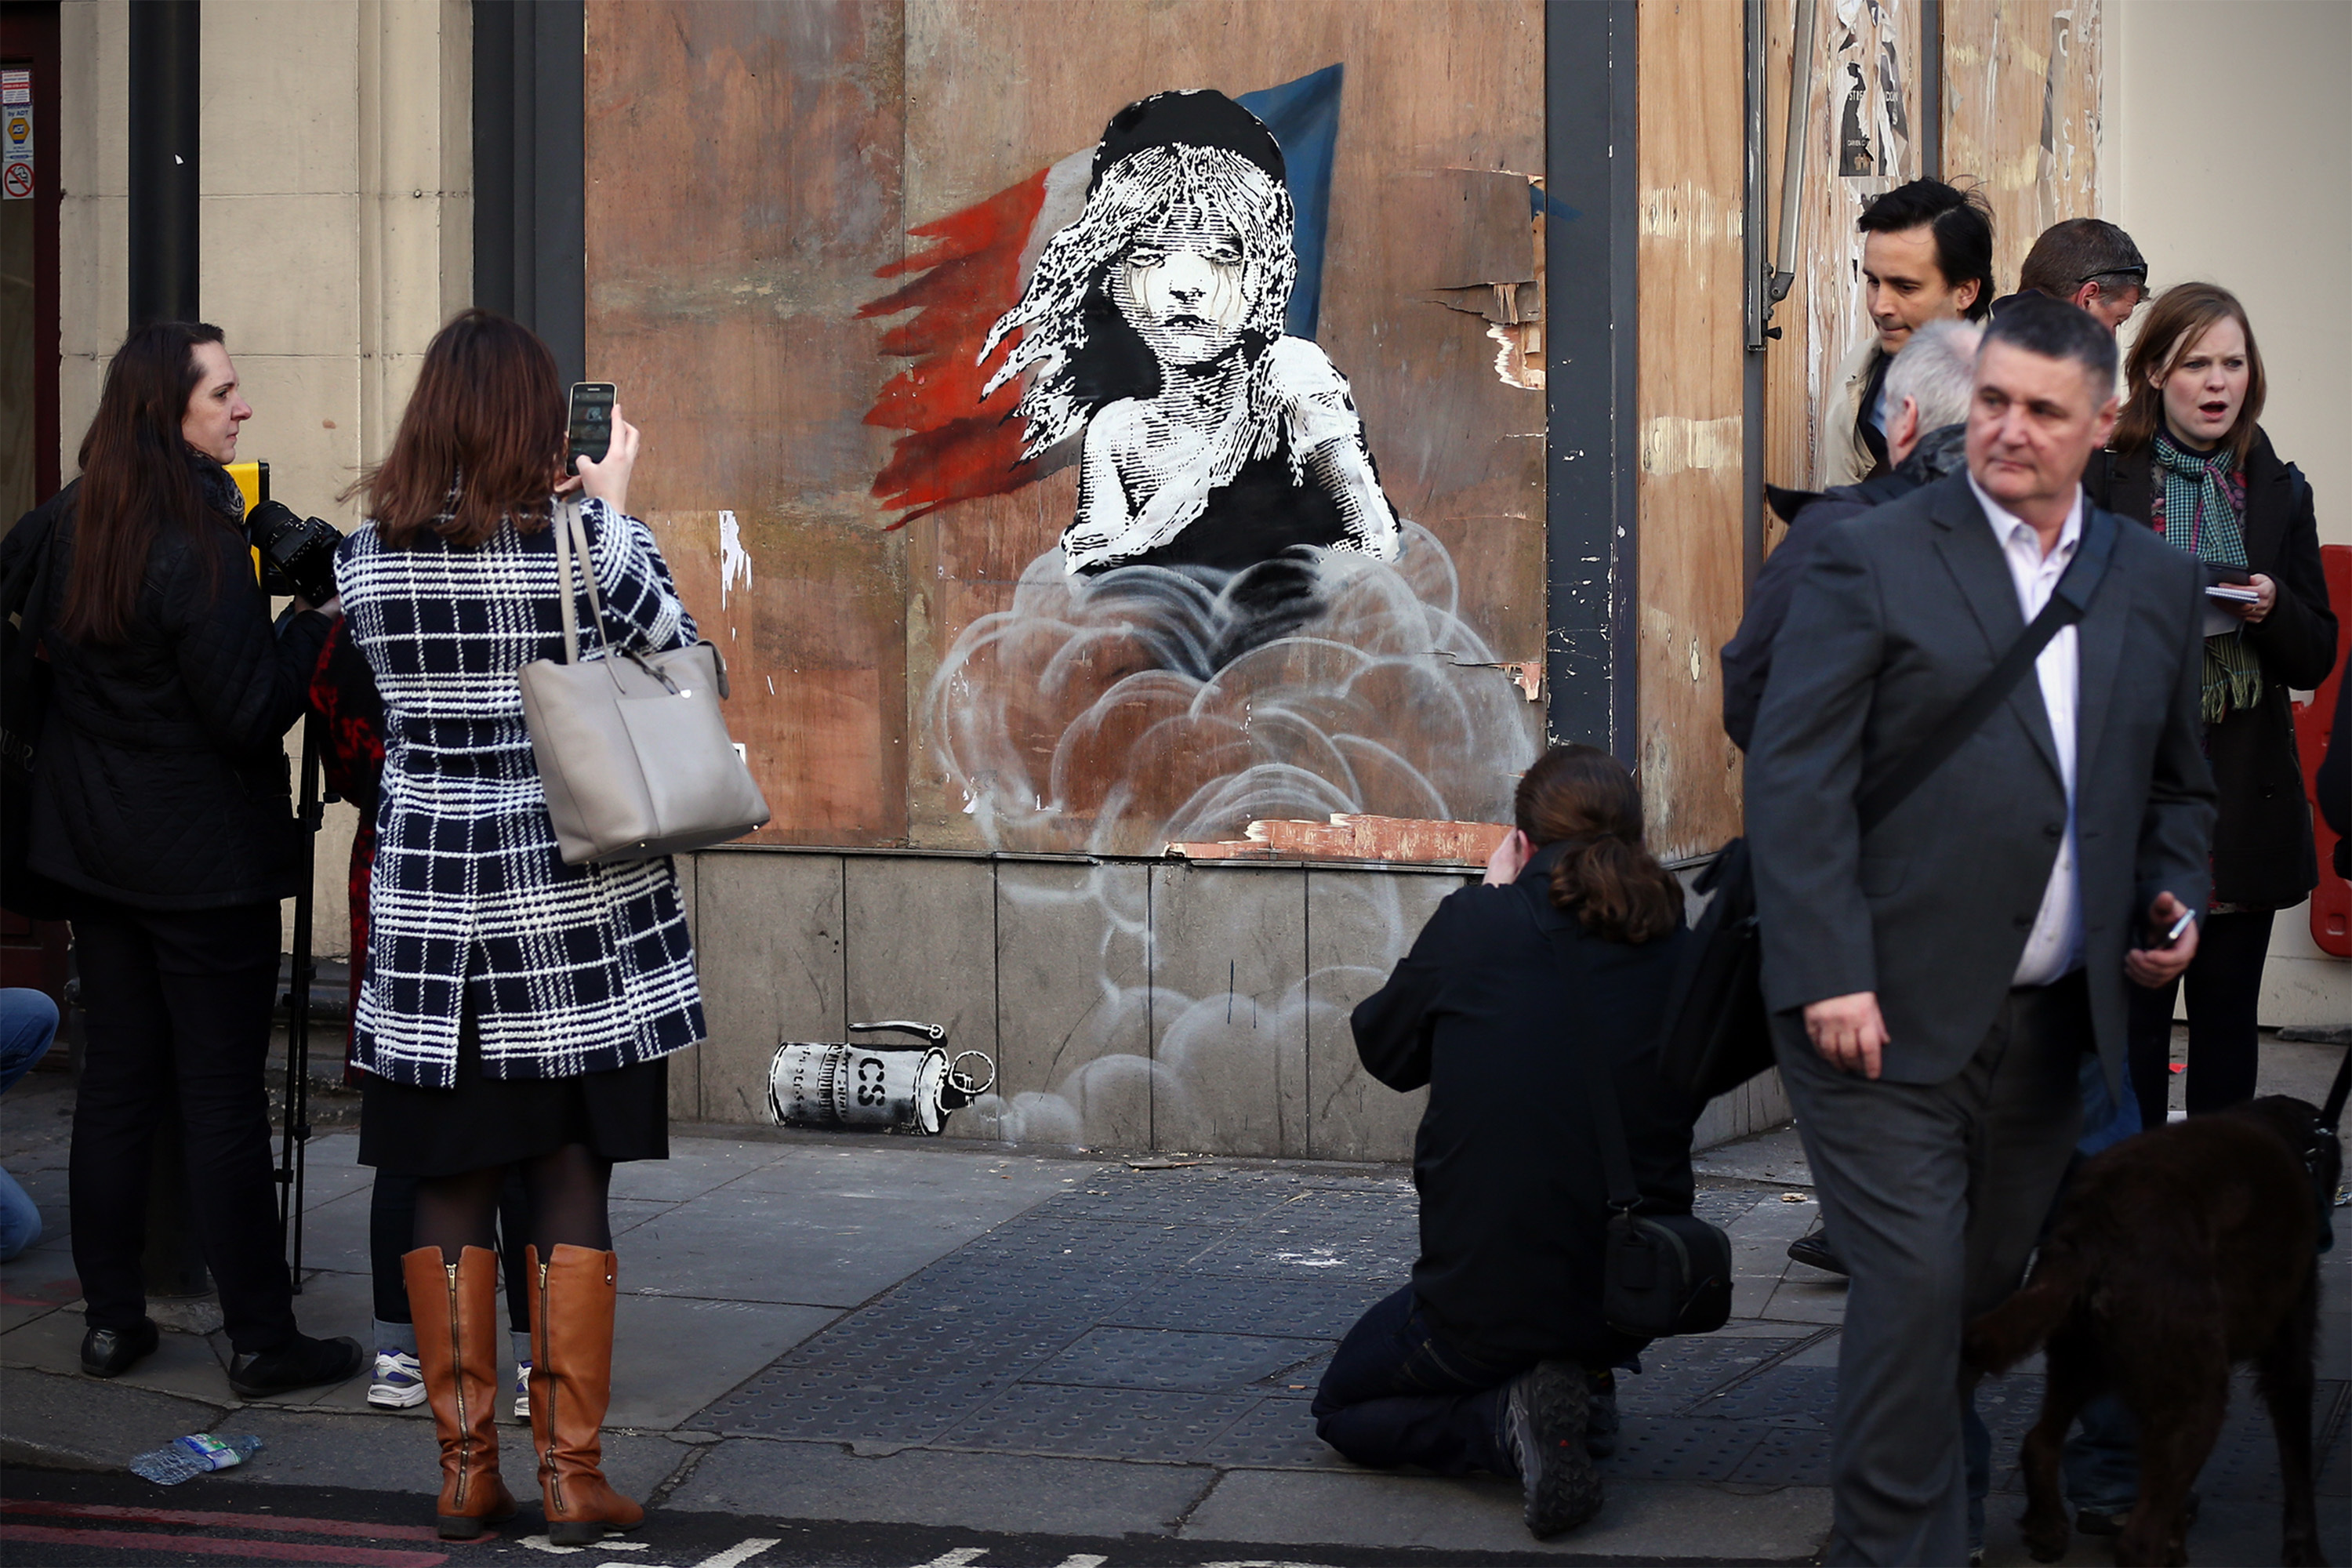 A new theory proposes that Banksy is actually a founding member of the trip-hop band Massive Attack.